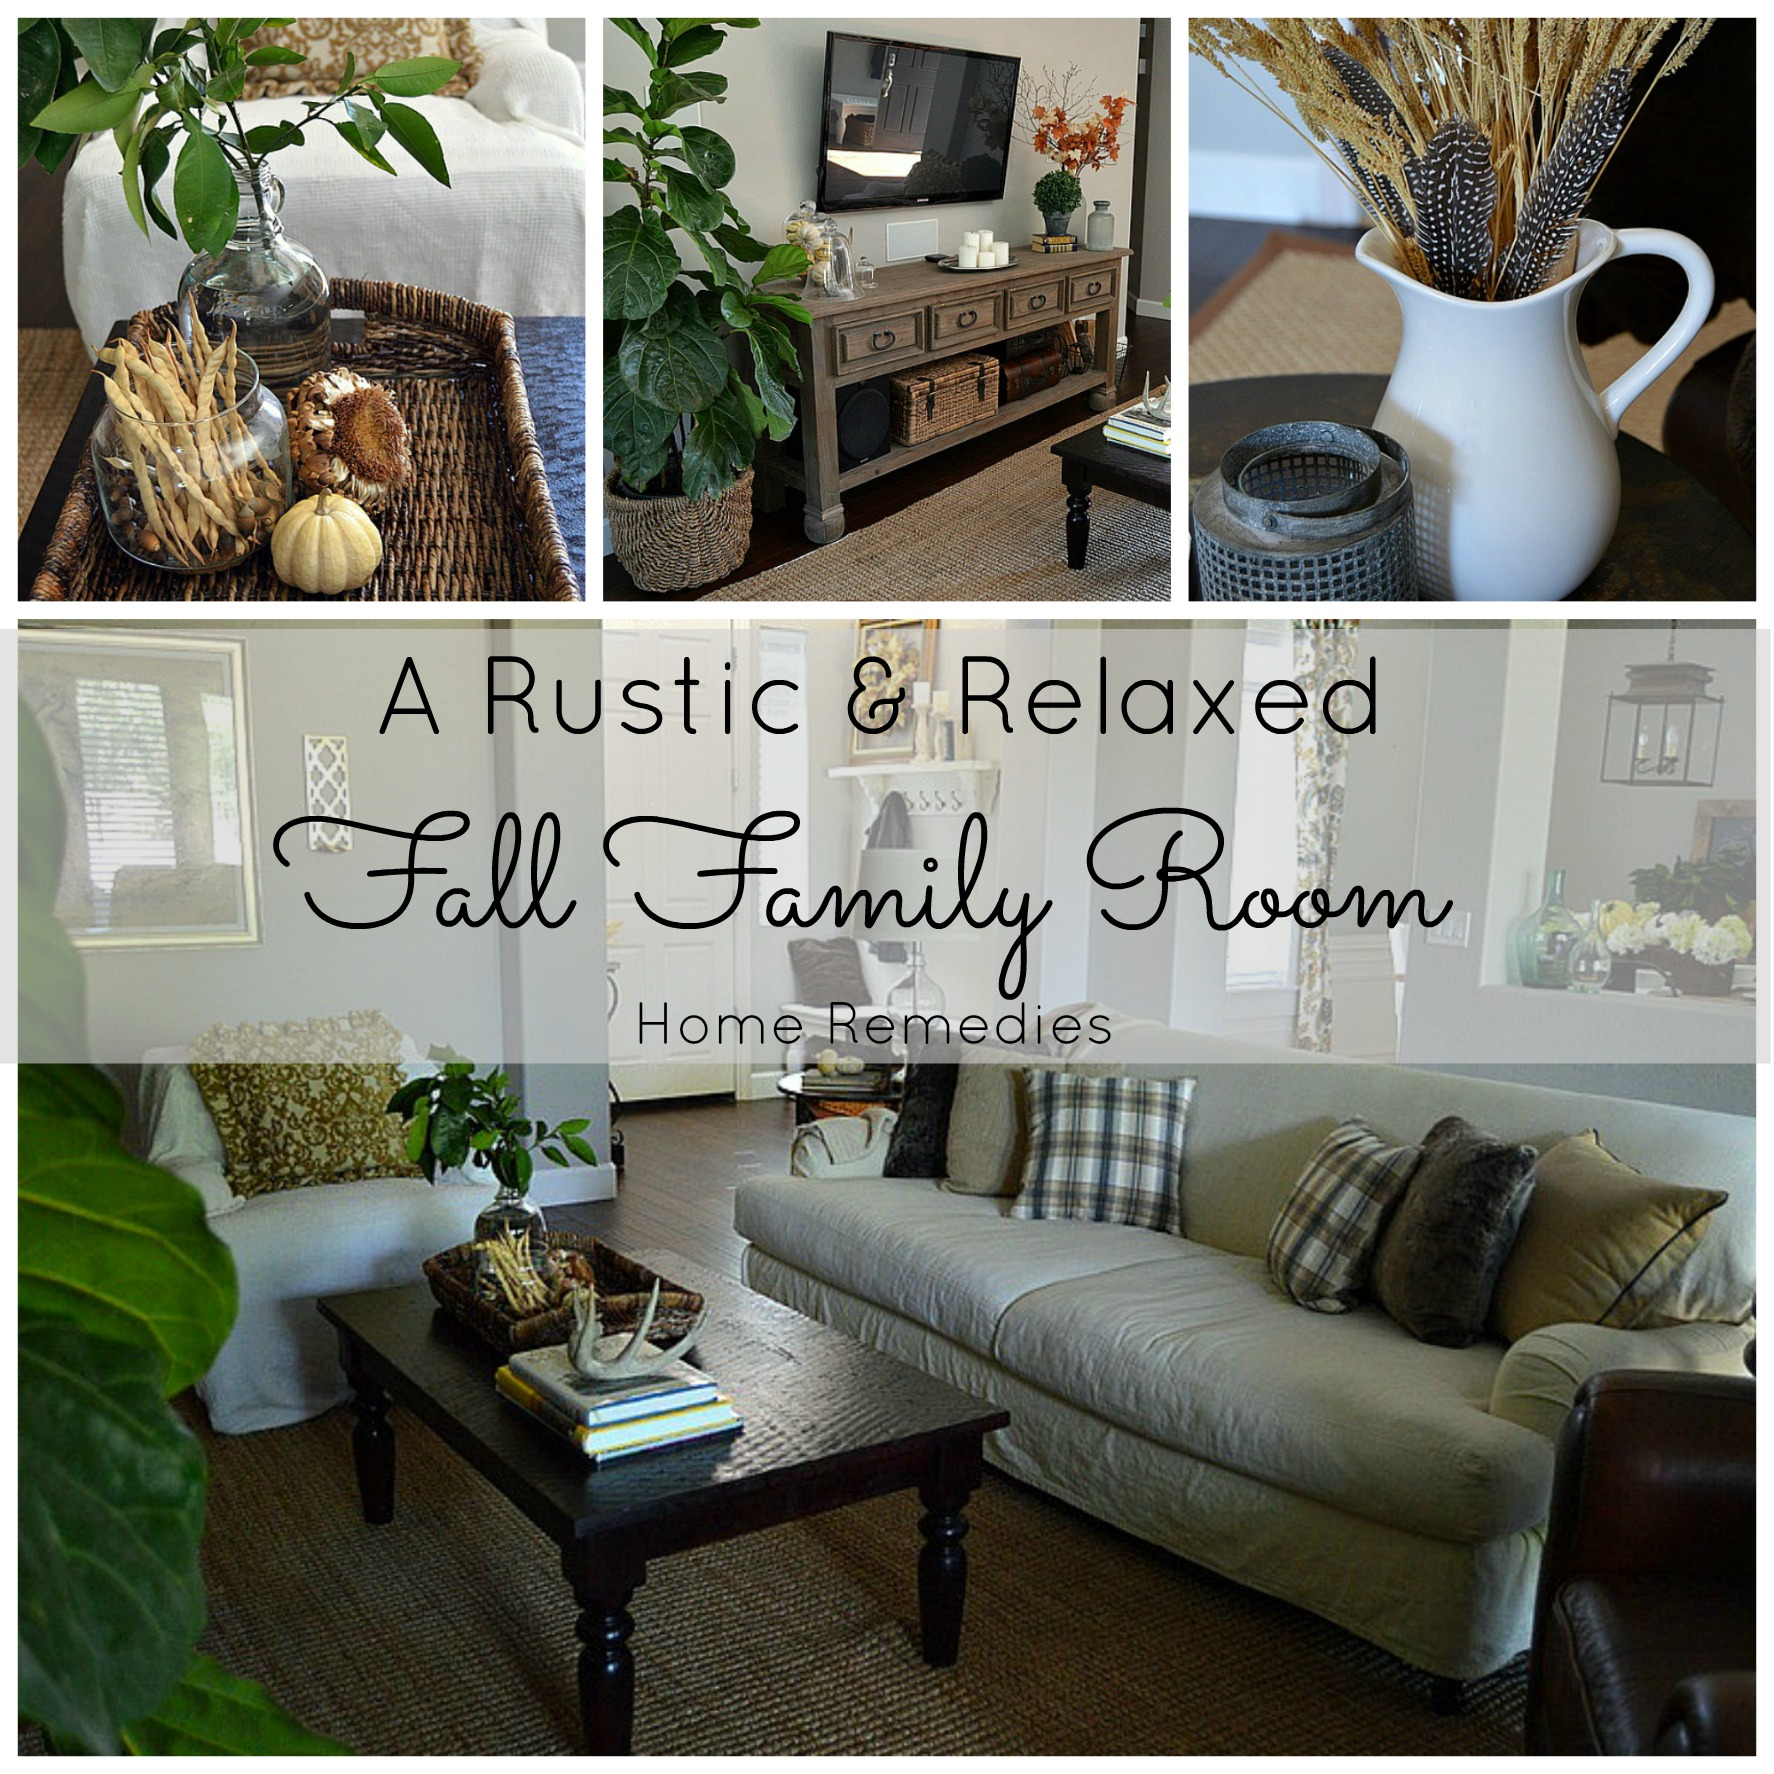 Rustic Family Room Rustic And Relaxed Fall Family Room Tour